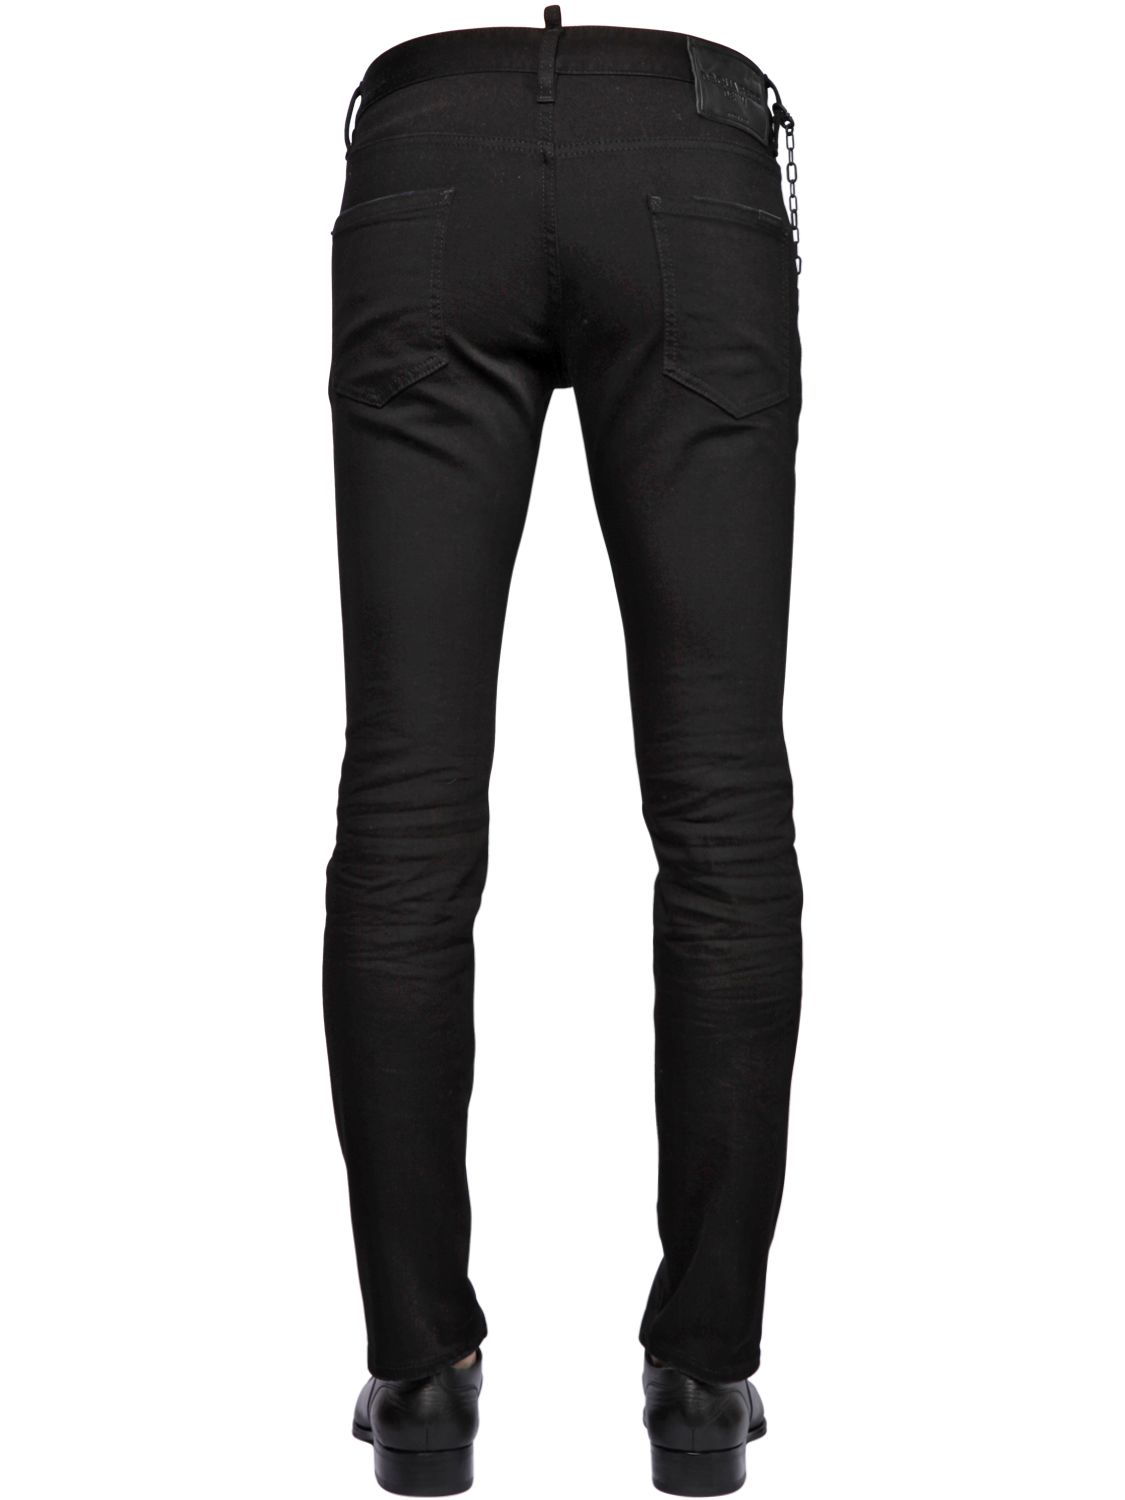 Lyst - Dsquared² 16.5cm Cool Guy Blk Stretch Denim Jeans ...